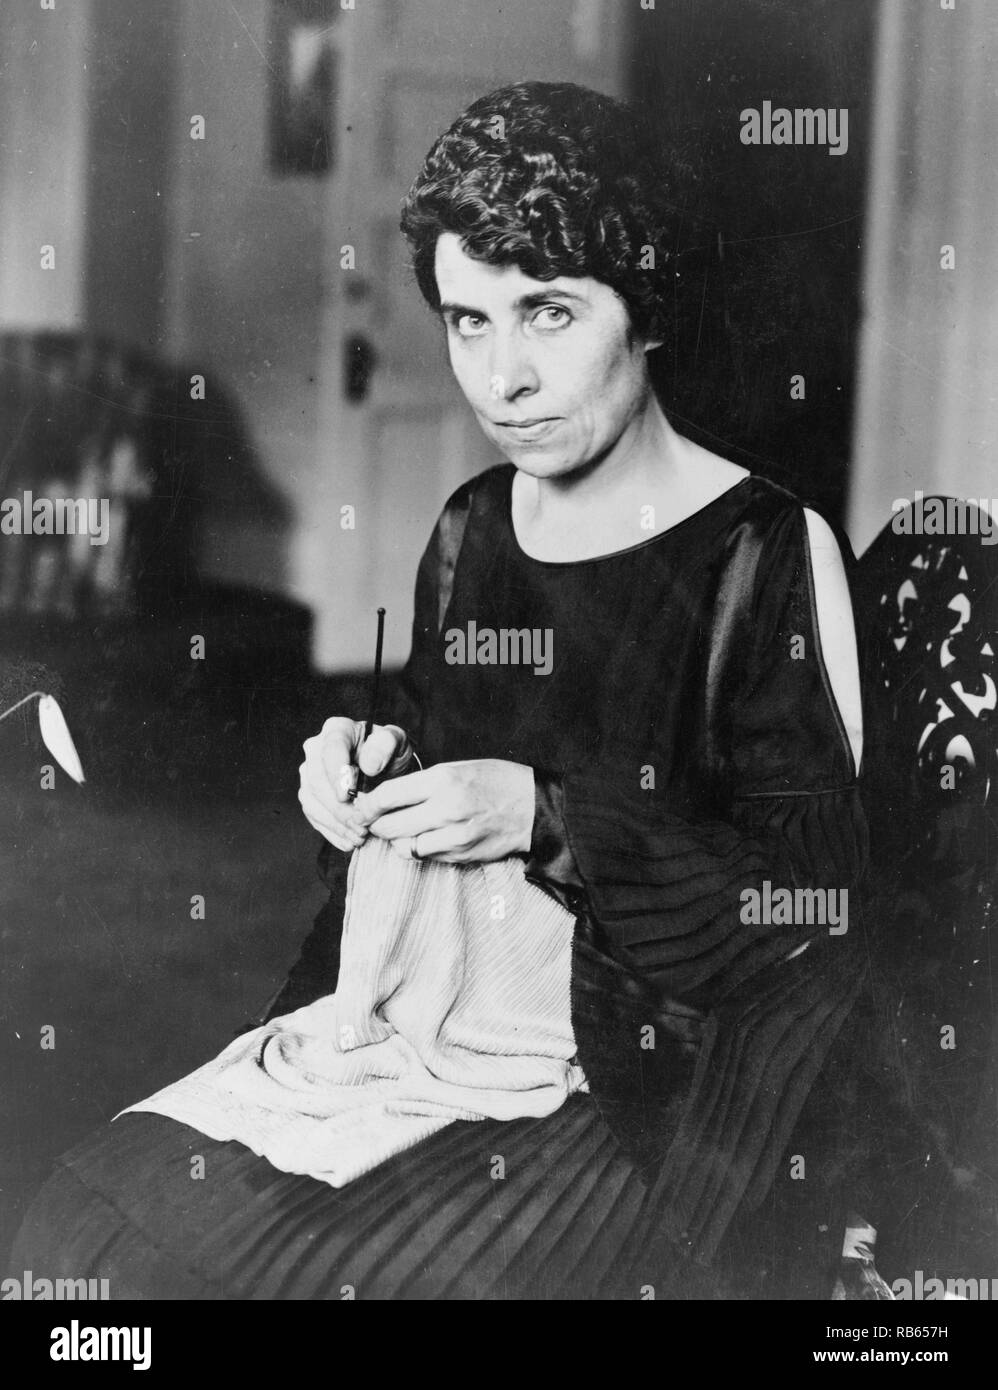 Grace Coolidge the wife of President Calvin Coolidge. Calvin Coolidge was the 30th President of the United States. A Republican lawyer from Vermont, Coolidge worked his way up the ladder of Massachusetts state politics, eventually becoming governor of that state. Stock Photo